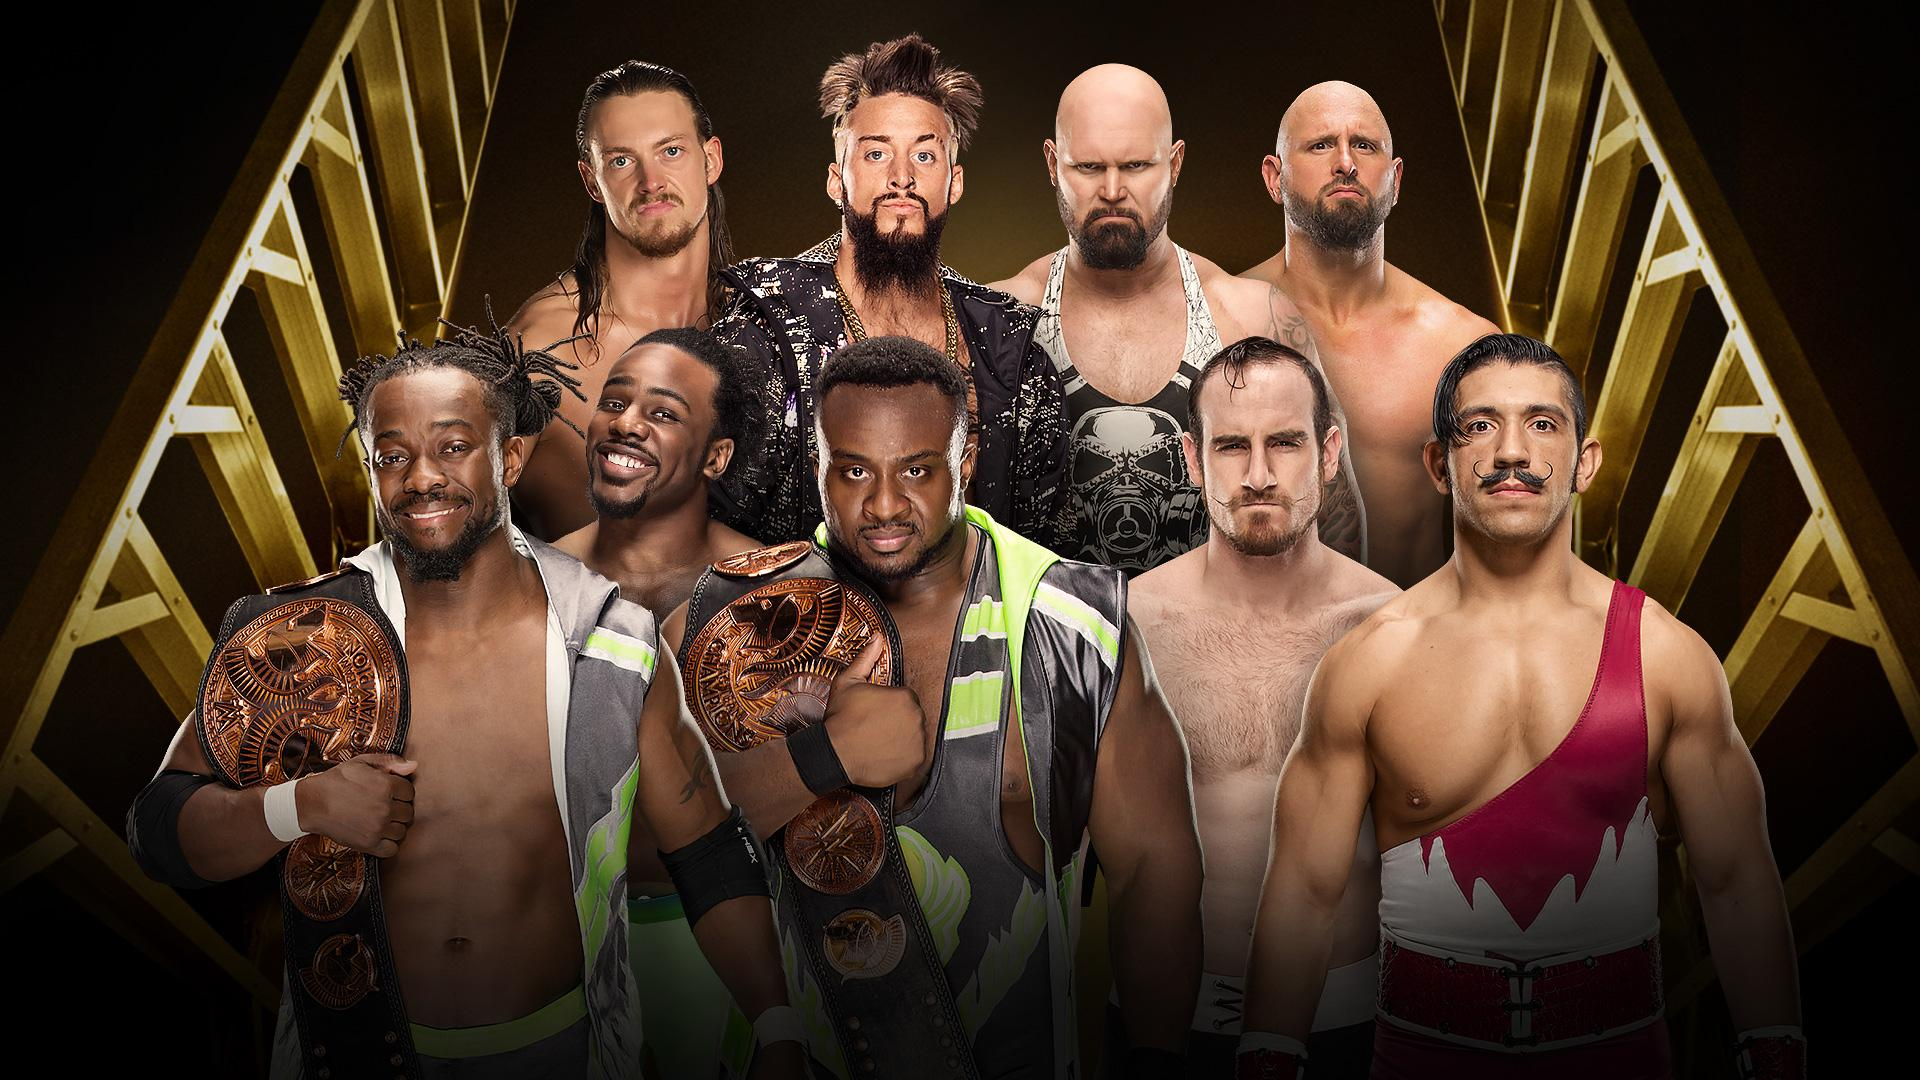 WWE Tag Team Champions The New Day vs Luke Gallows et Karl Anderson vs Enzo Amore et Big Cass vs The Vaudevillains (Fatal 4-Way Match)